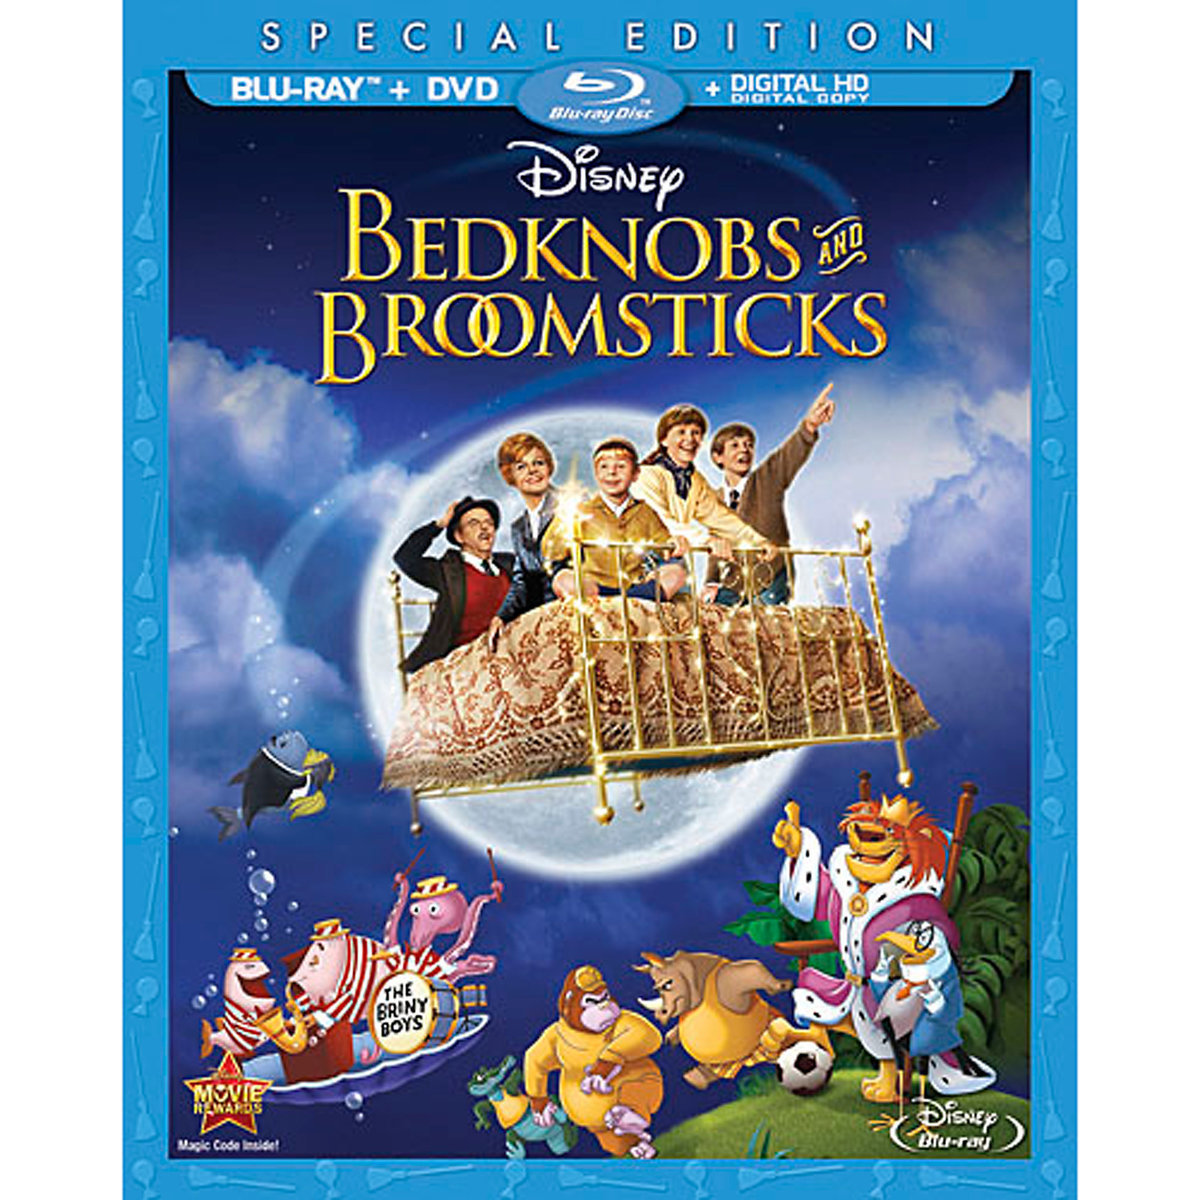 Bedknobs and Broomsticks (Special Edition) (Blu-ray + DVD + Digital HD) by Buena Vista